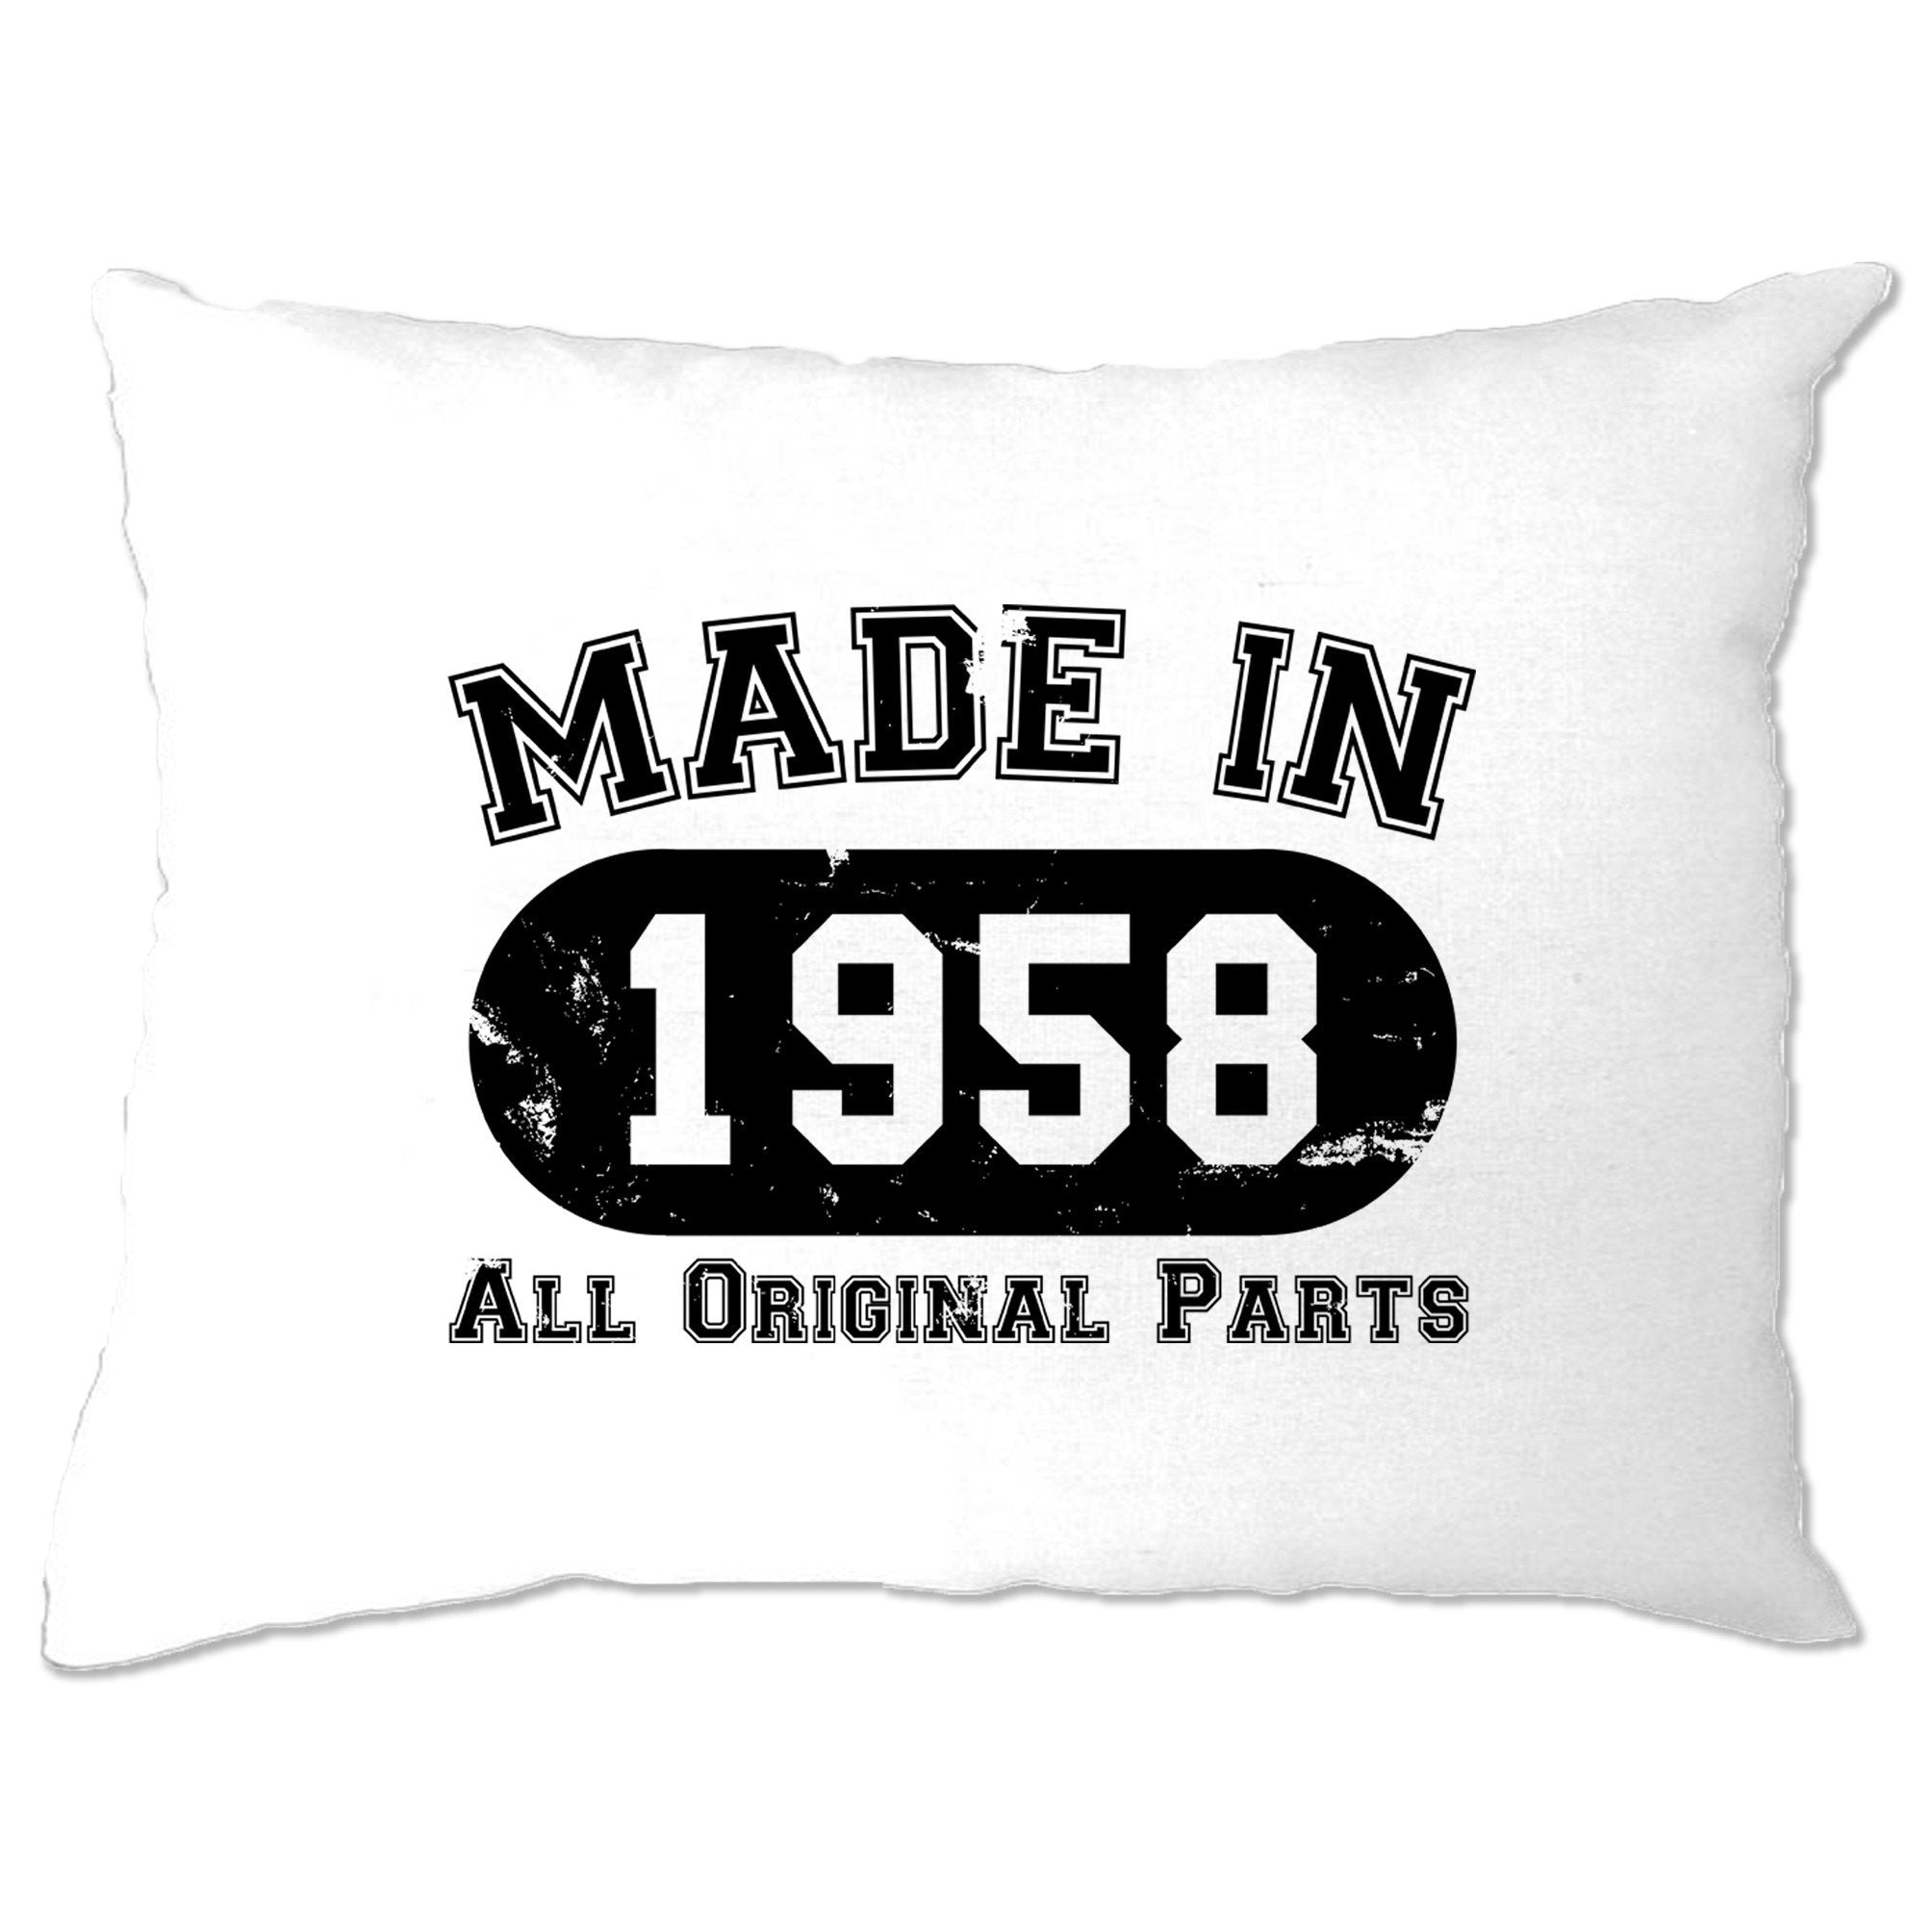 Made in 1958 All Original Parts Pillow Case [Distressed]